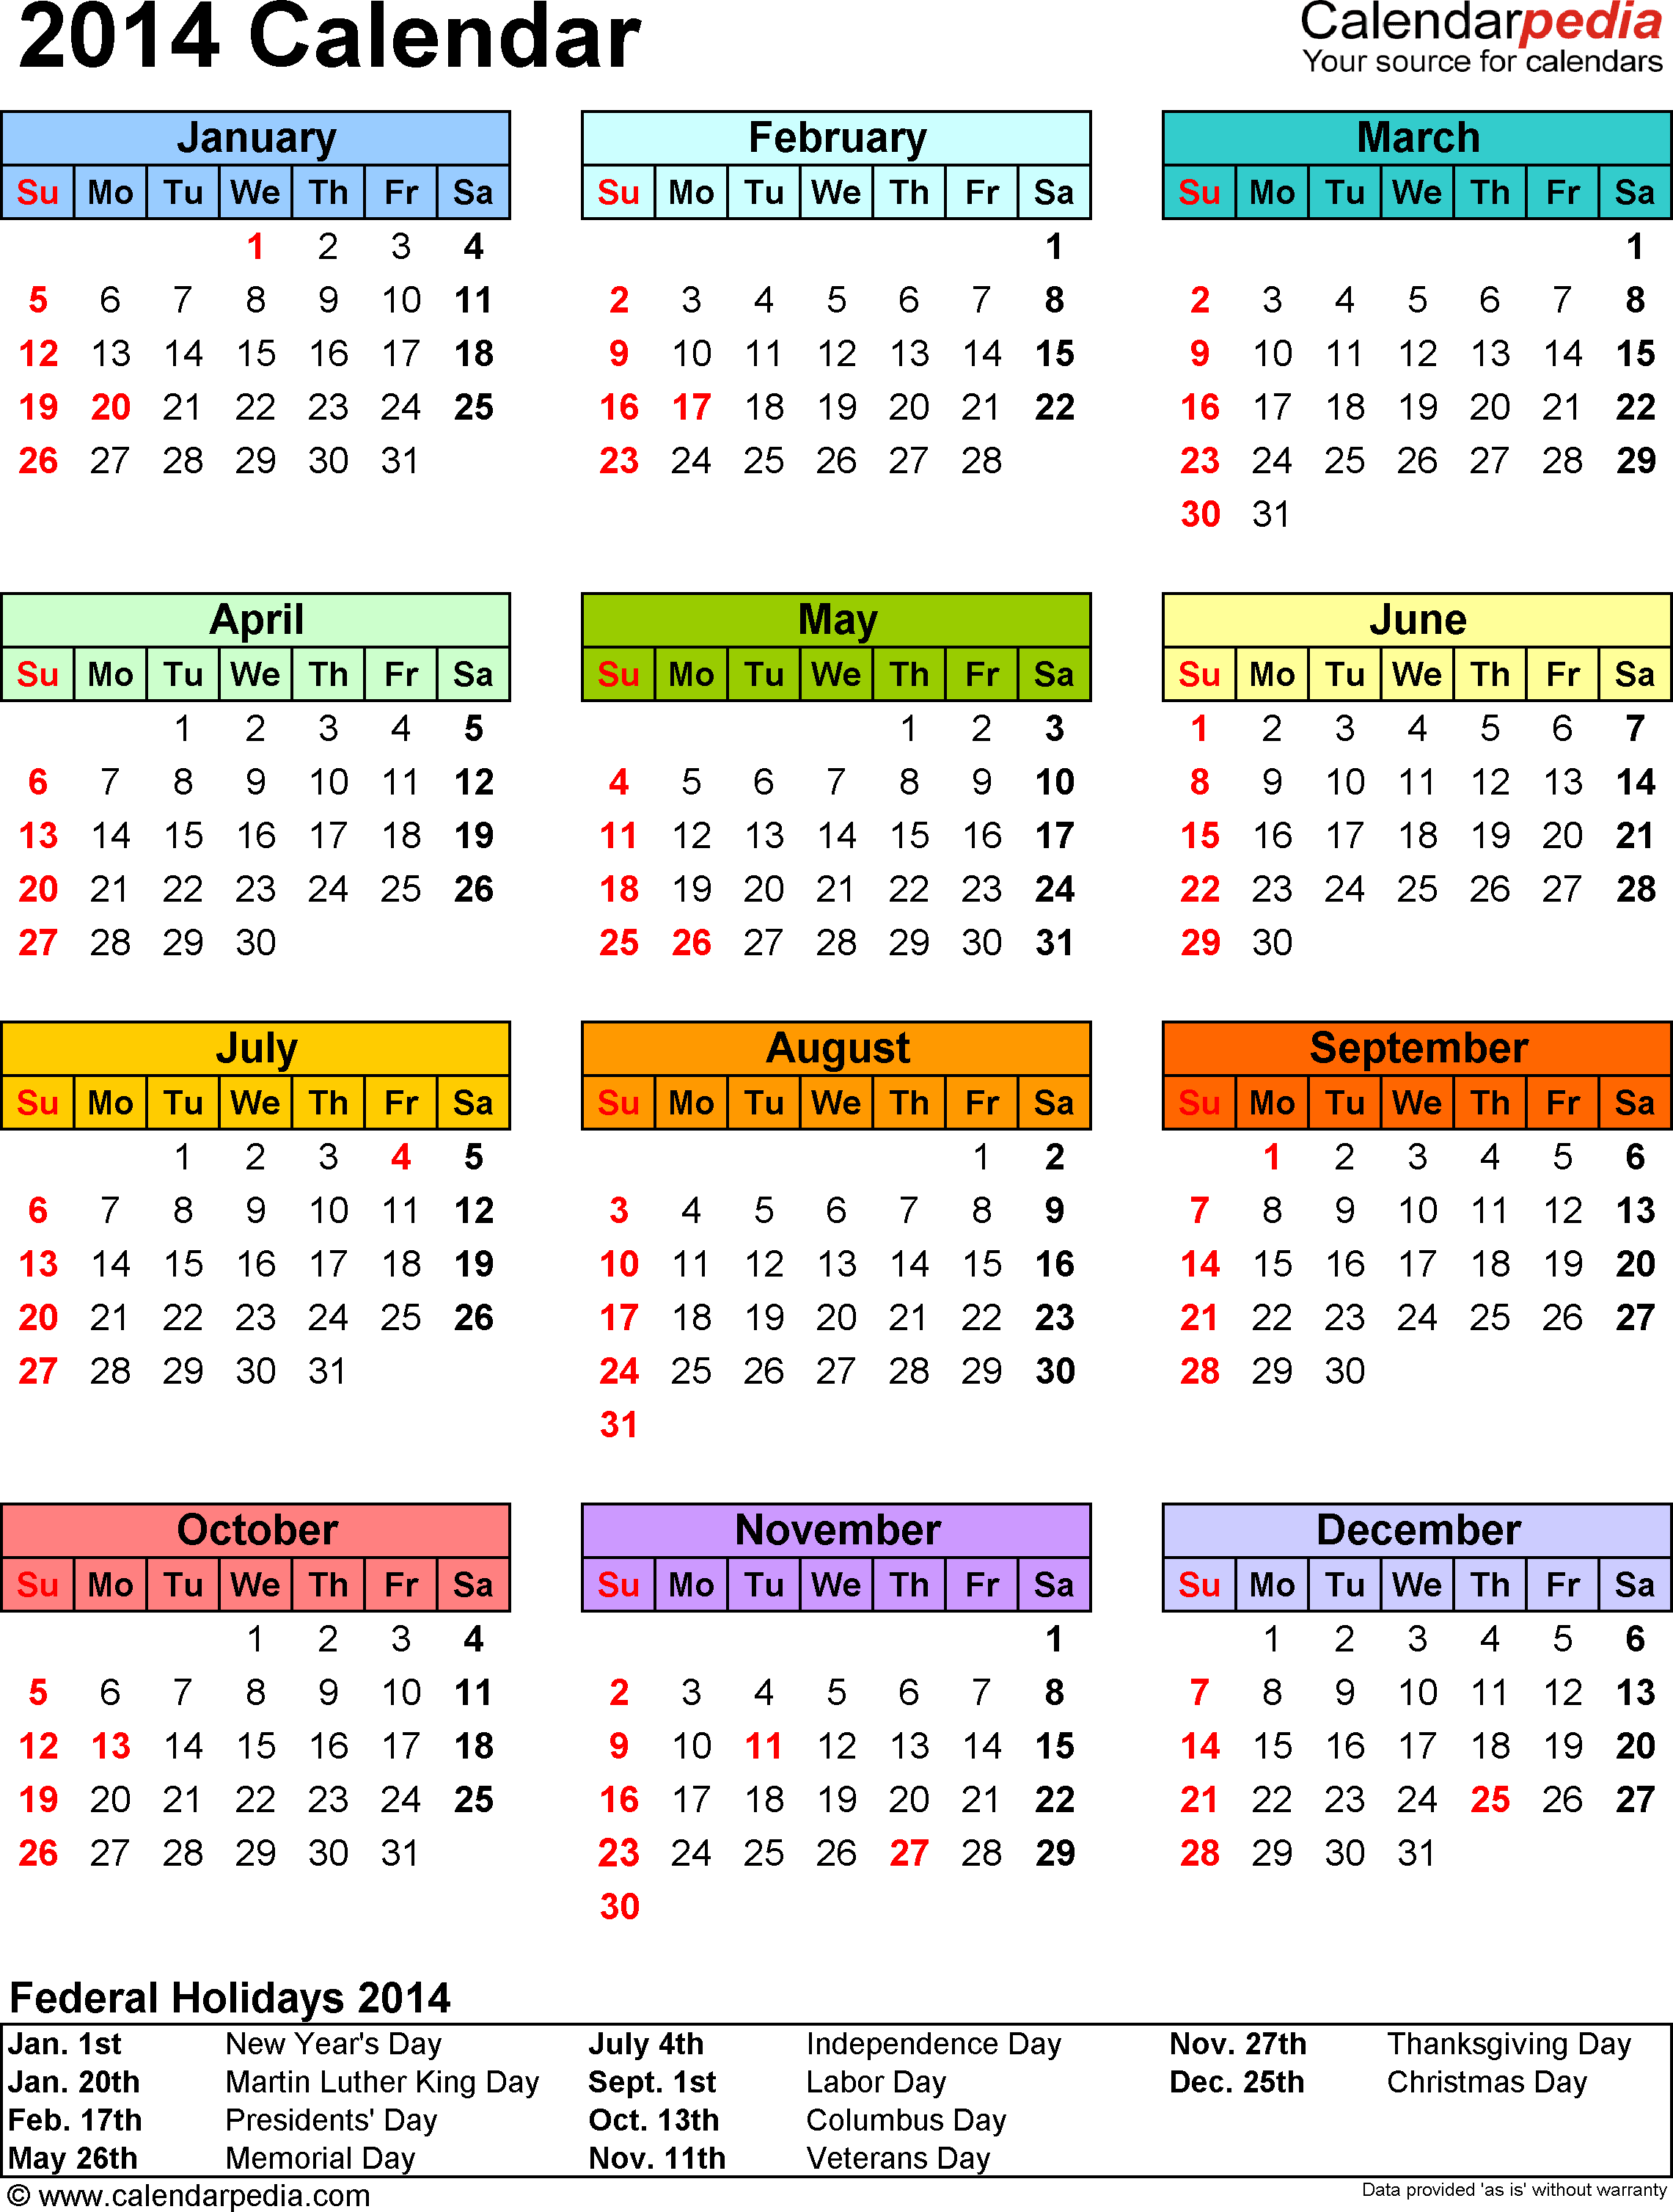 Template 12: 2014 Calendar for Excel, 1 page, portrait orientation, in color